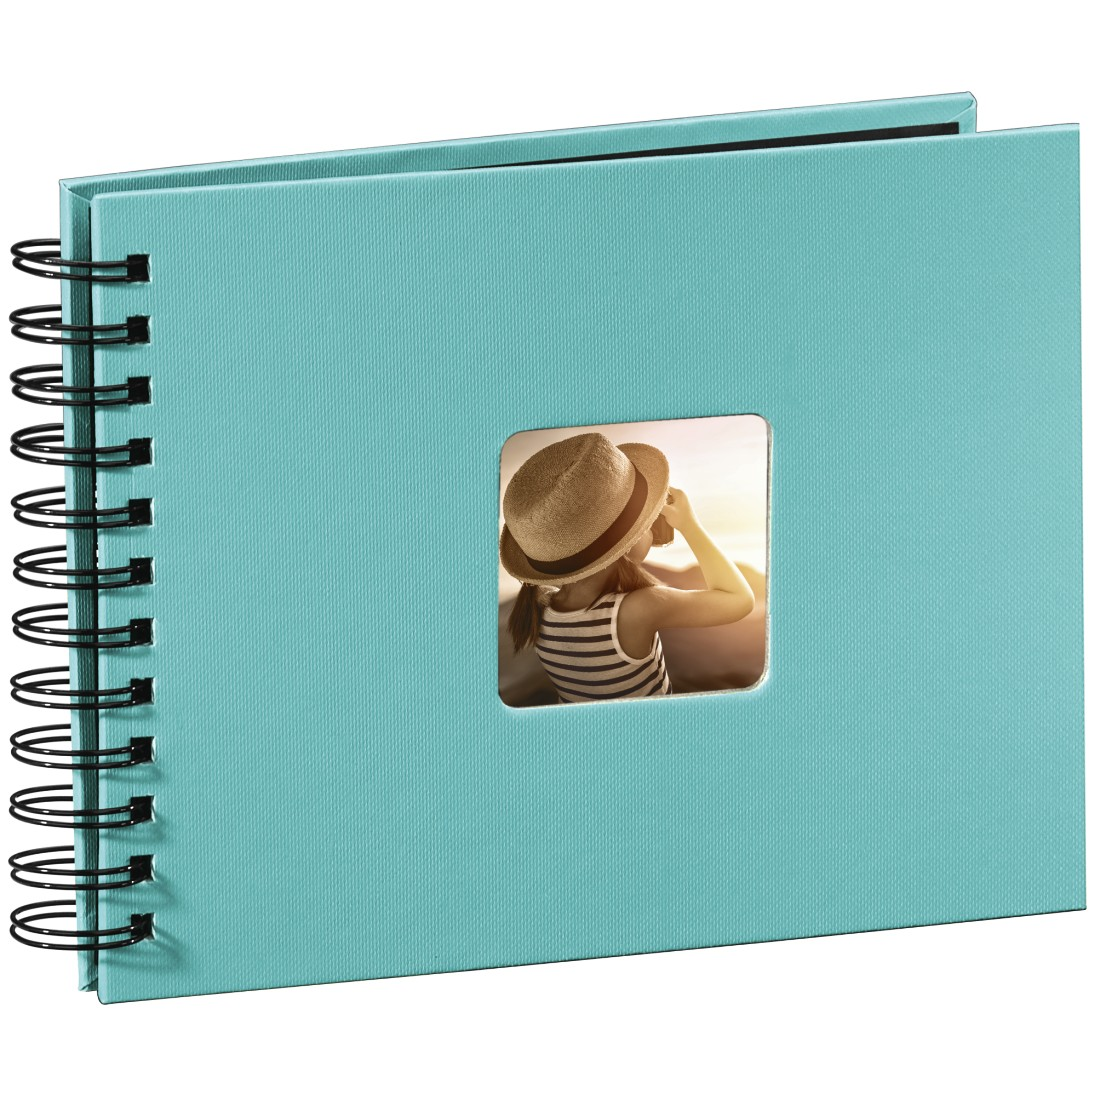 "abx3 High-Res Image 3 - Hama, ""Fine Art"" Spiral Album, 24 x 17 cm, 50 Black Pages, turquoise"